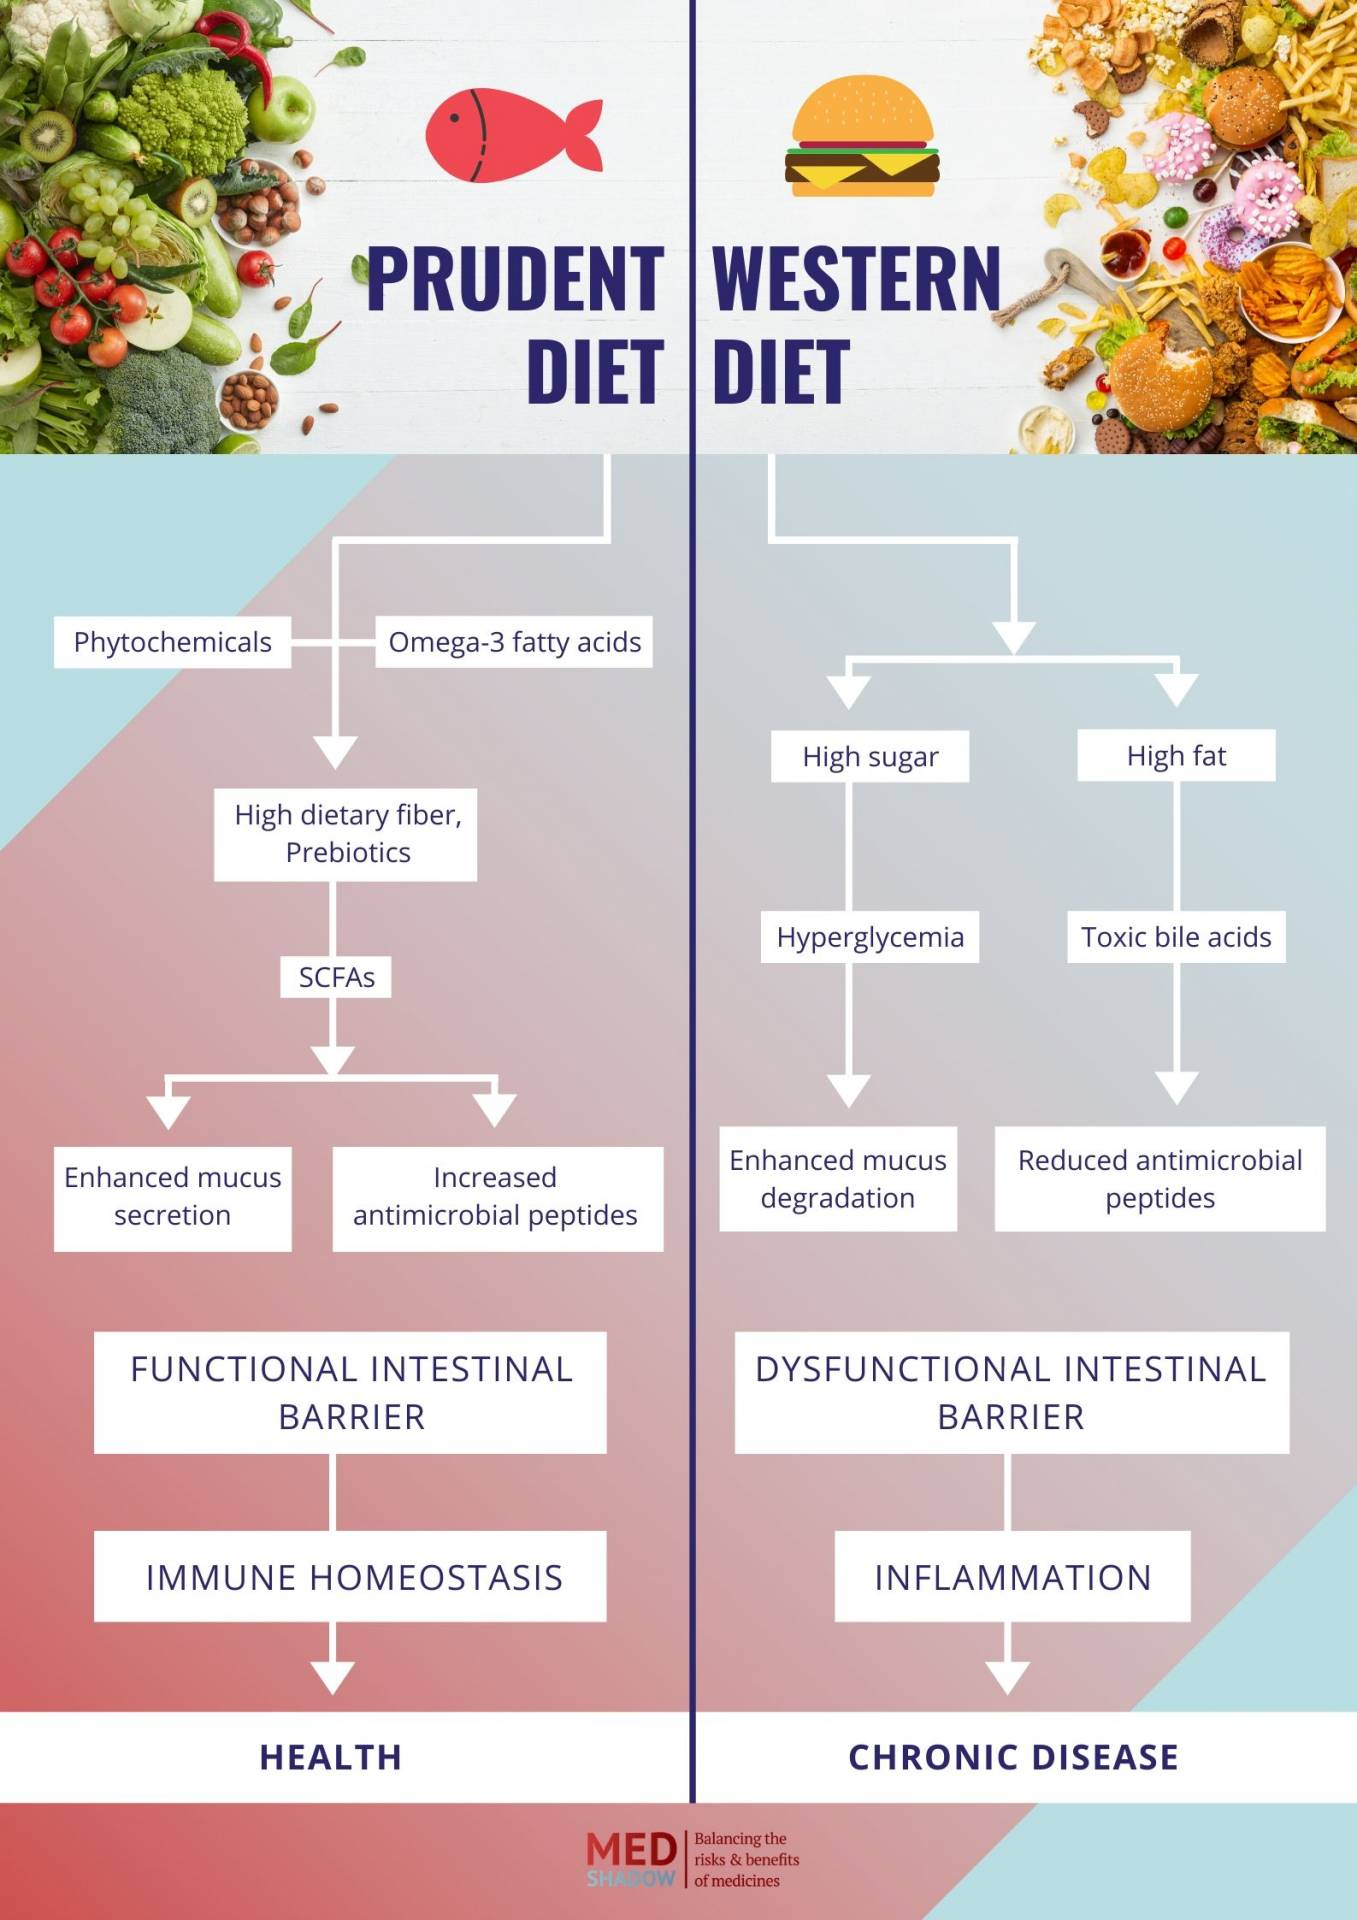 prudent diet vs western diet